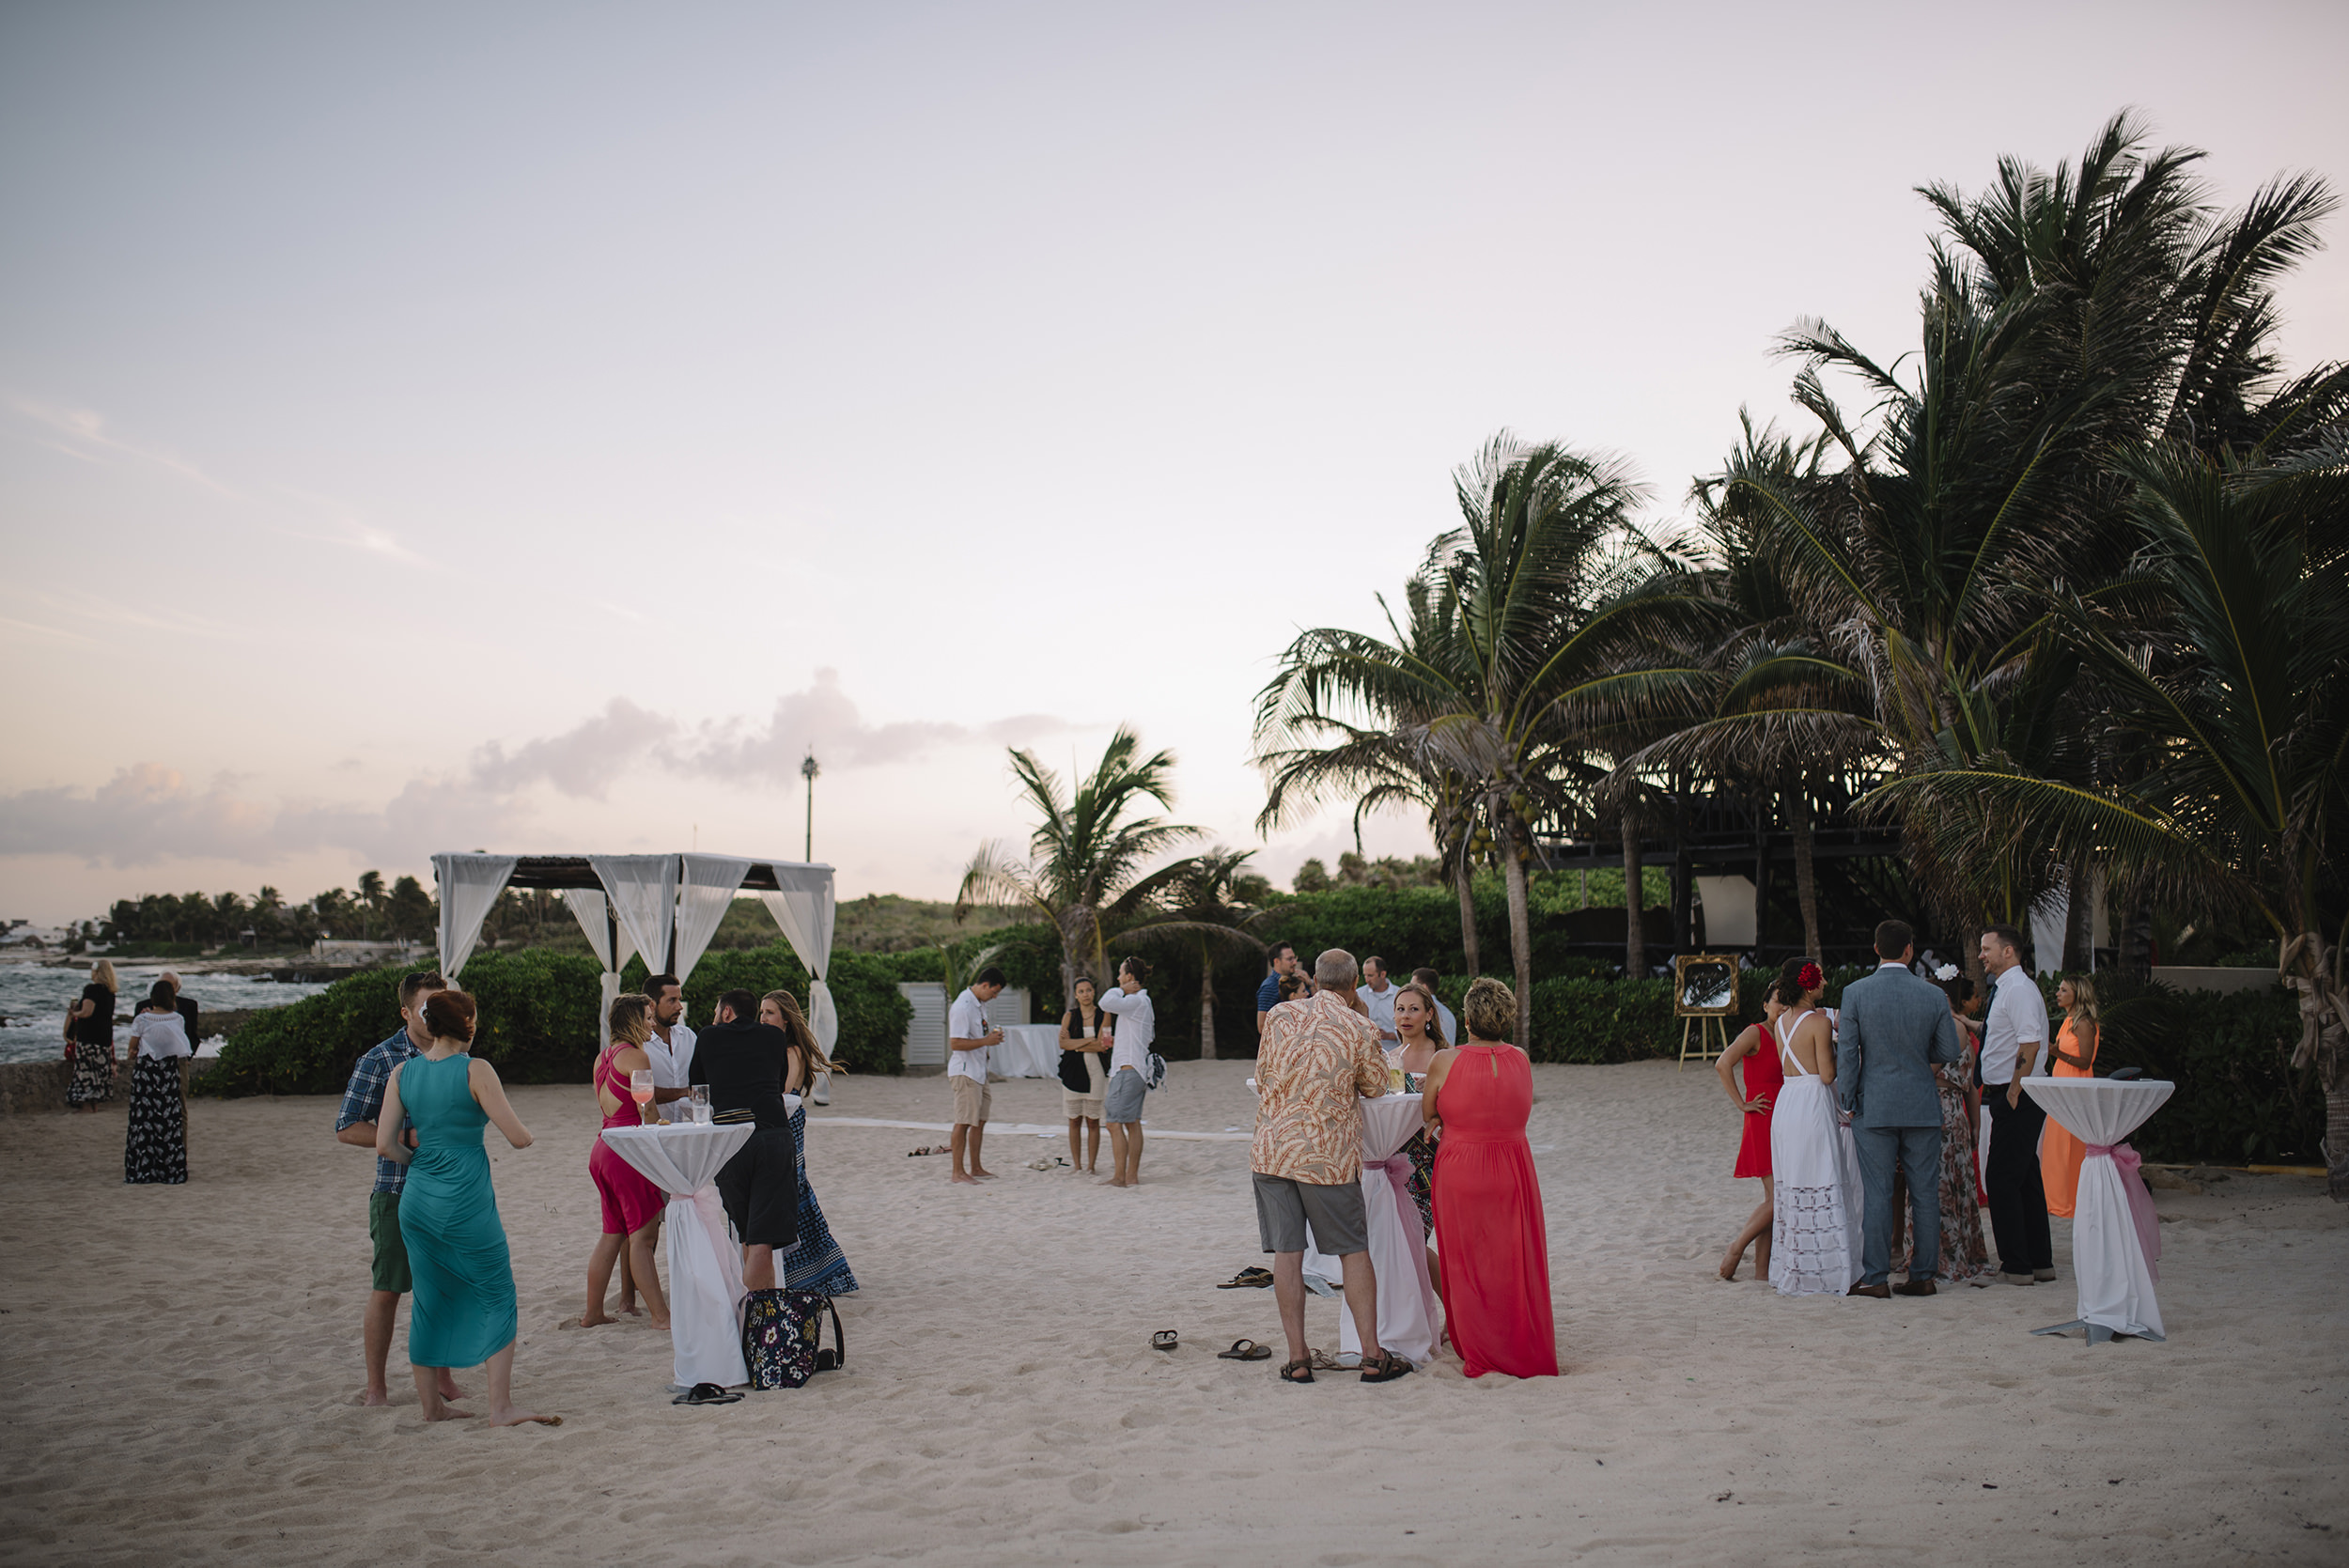 Colby-and-Jess-Intimate-Beach-Wedding-Destination-Cancun-Mexico131.jpg